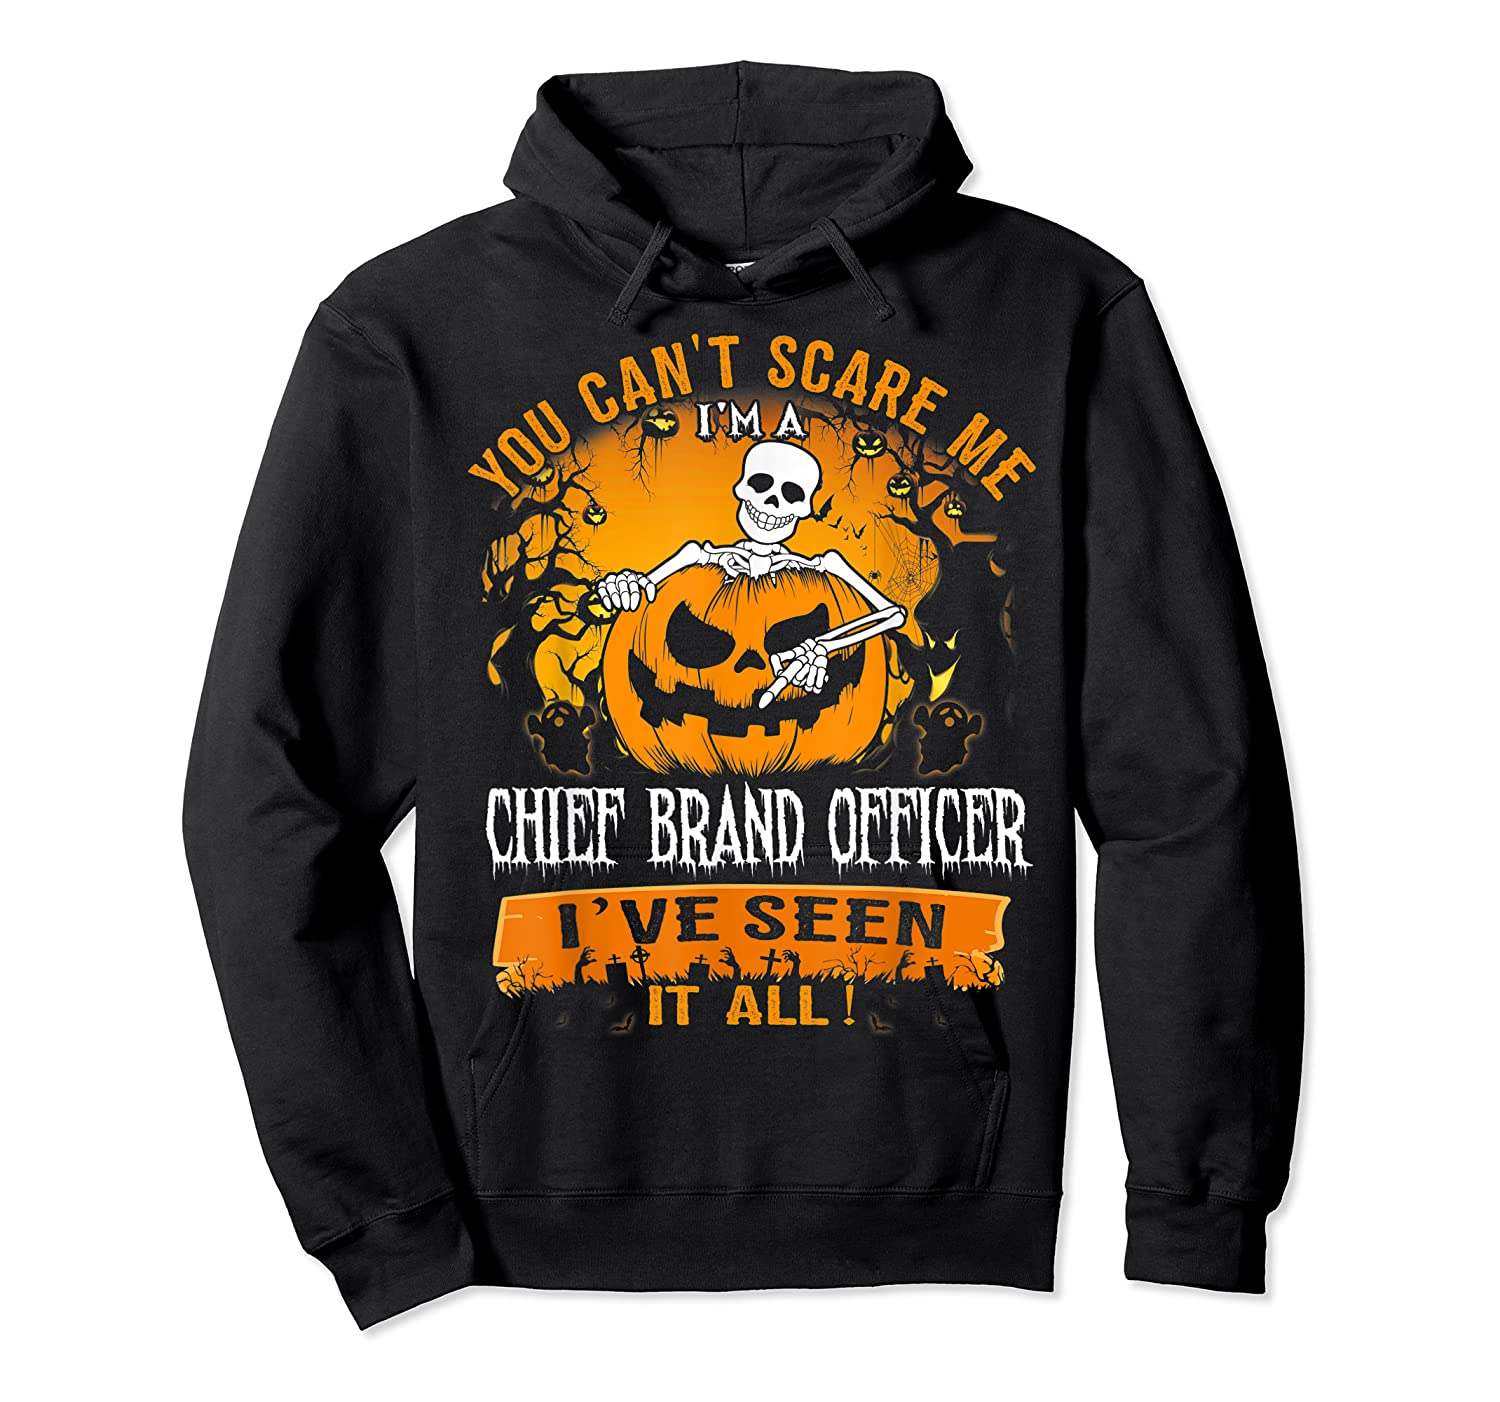 You Can't Scare Me I Am A Chief Brand Officer Halloween Shirts Unisex Pullover Hoodie